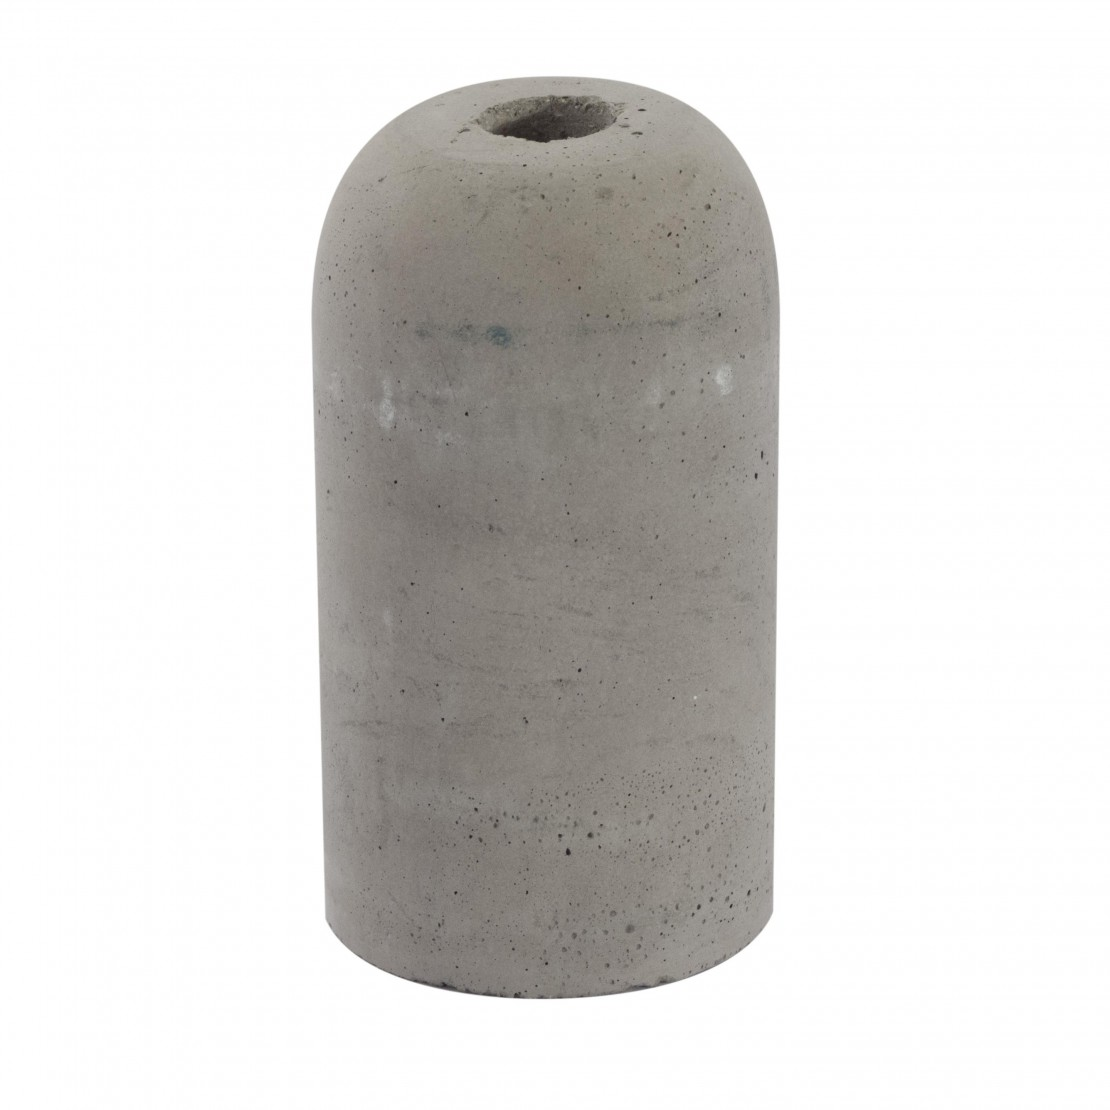 E27 concrete lamp holder